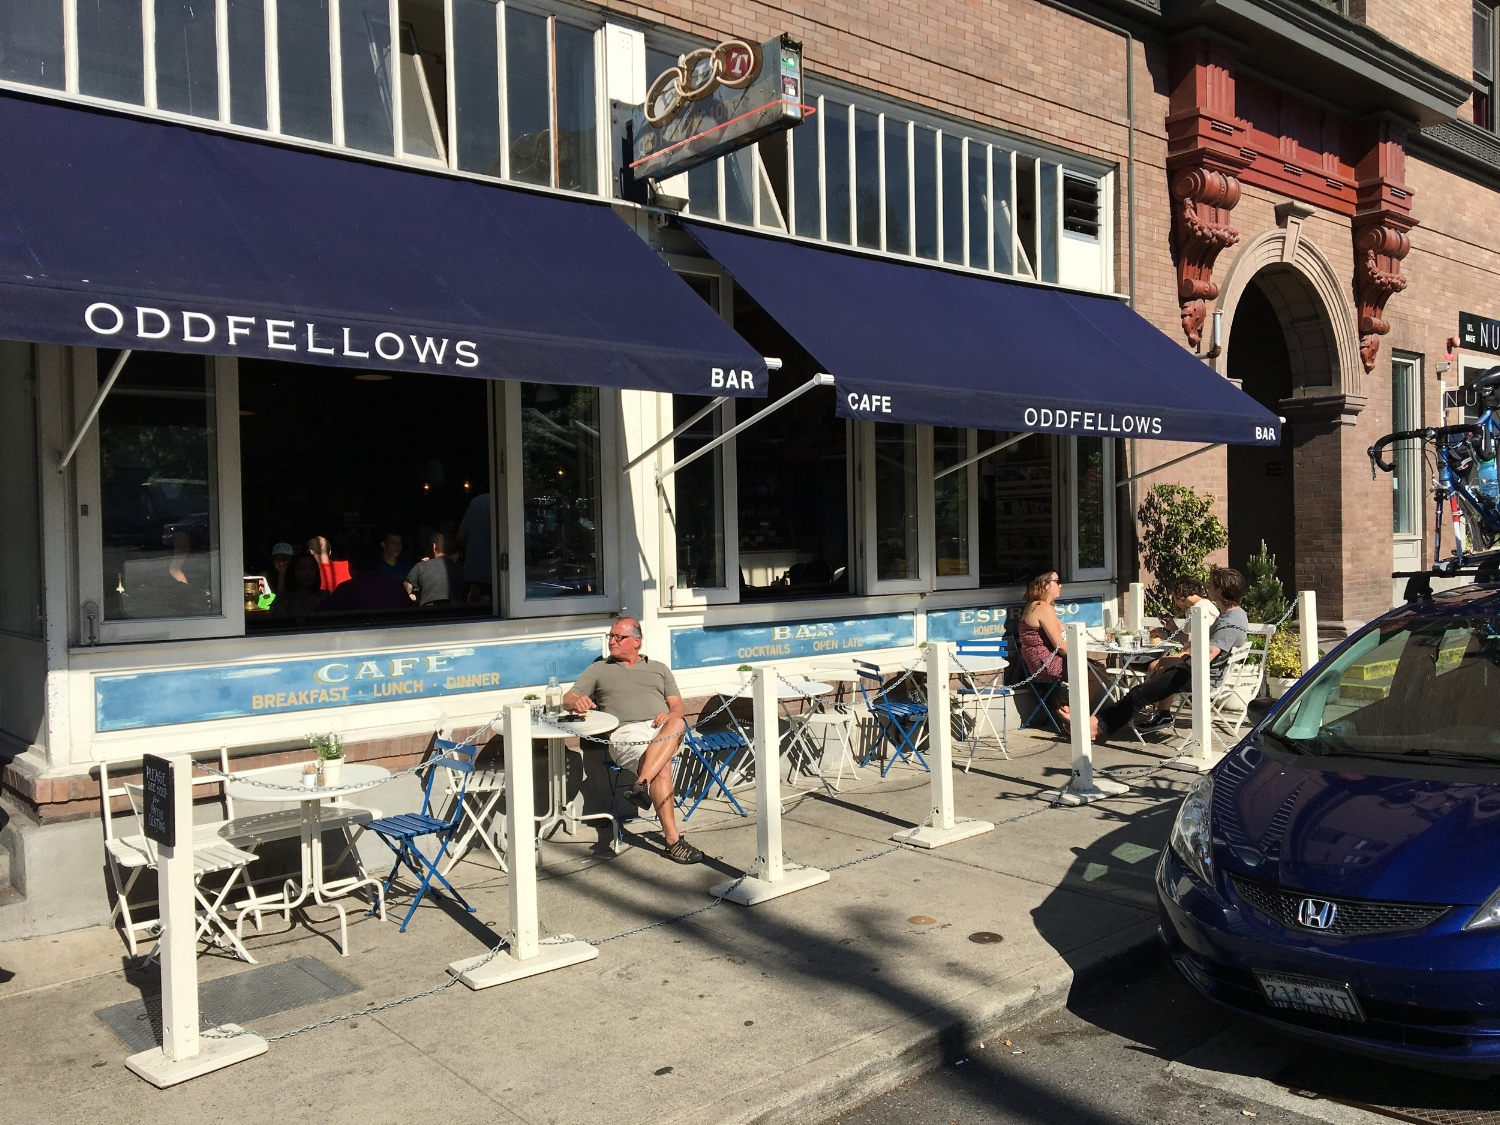 ODDFELLOWS CAFE, SEATTLE